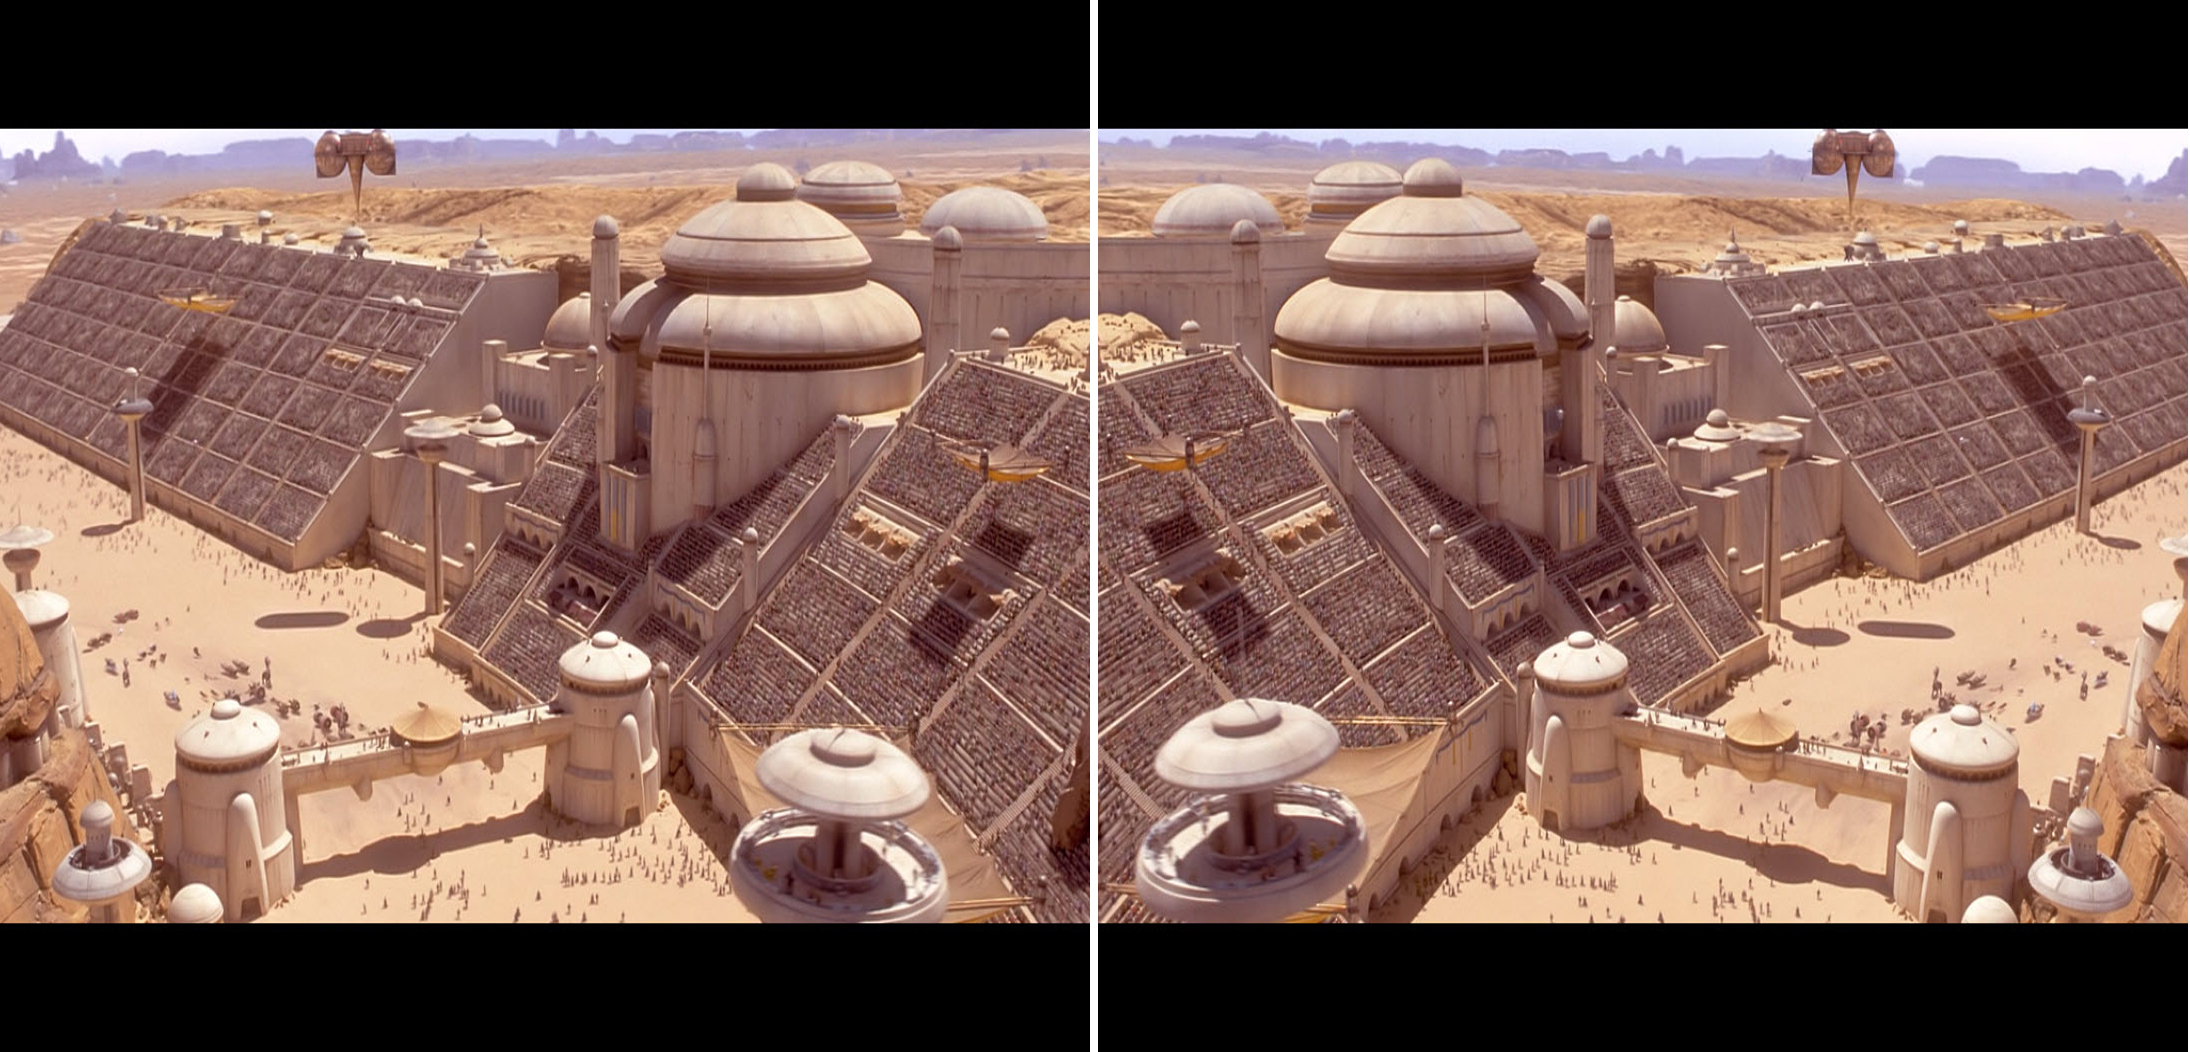 Star wars 3d without glasses by garbagestar on deviantart for 3d star net